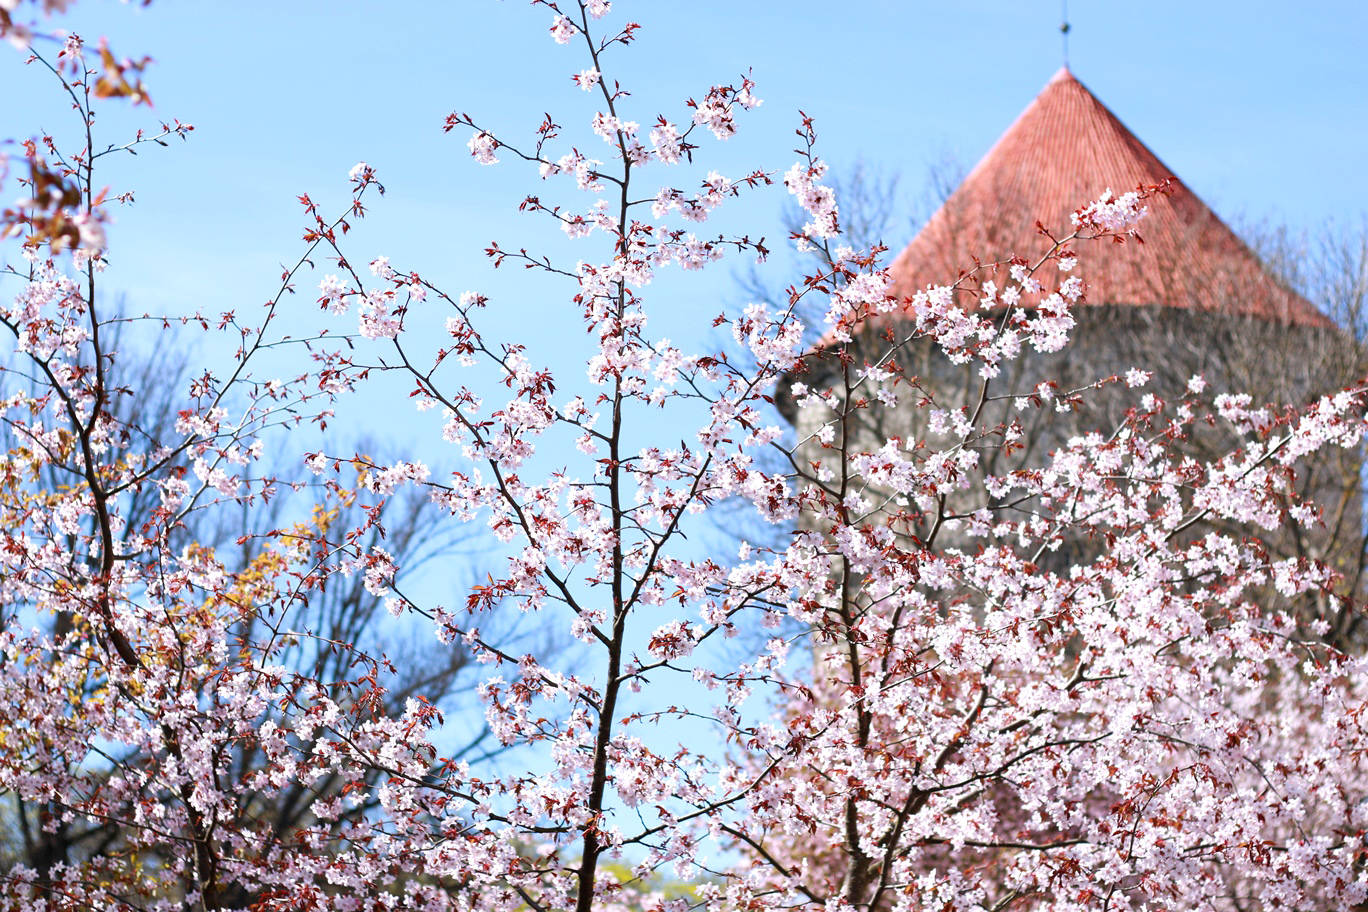 The cherry blossoms on the Freedom Square and the Kiek in de Kök defense tower.